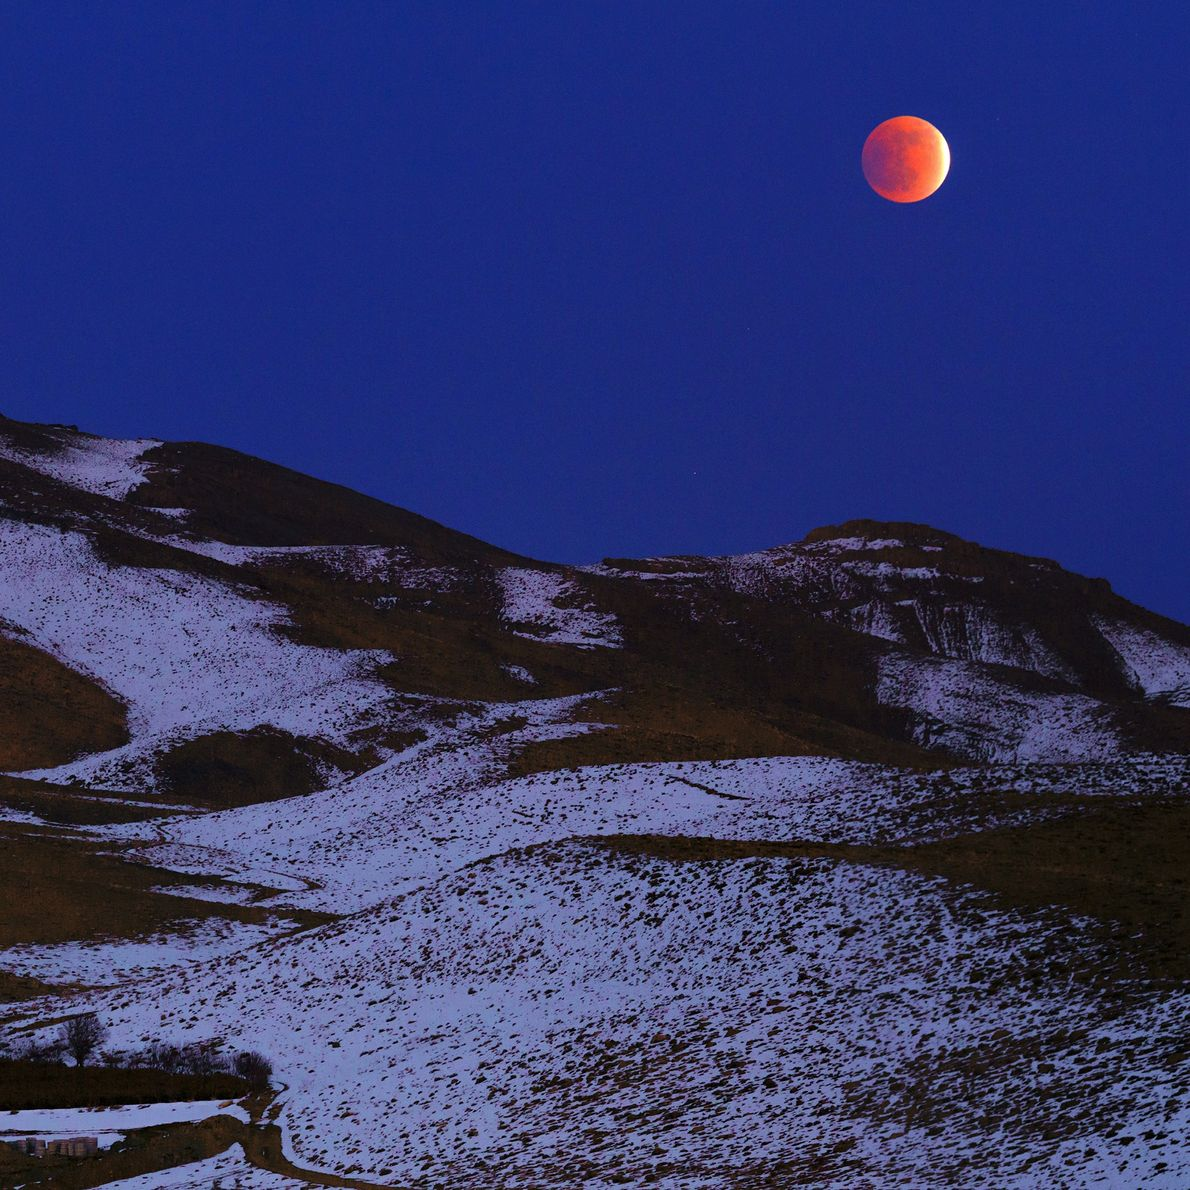 The total lunar eclipse of December 2011 glows in the evening sky over the Zagros Mountains ...